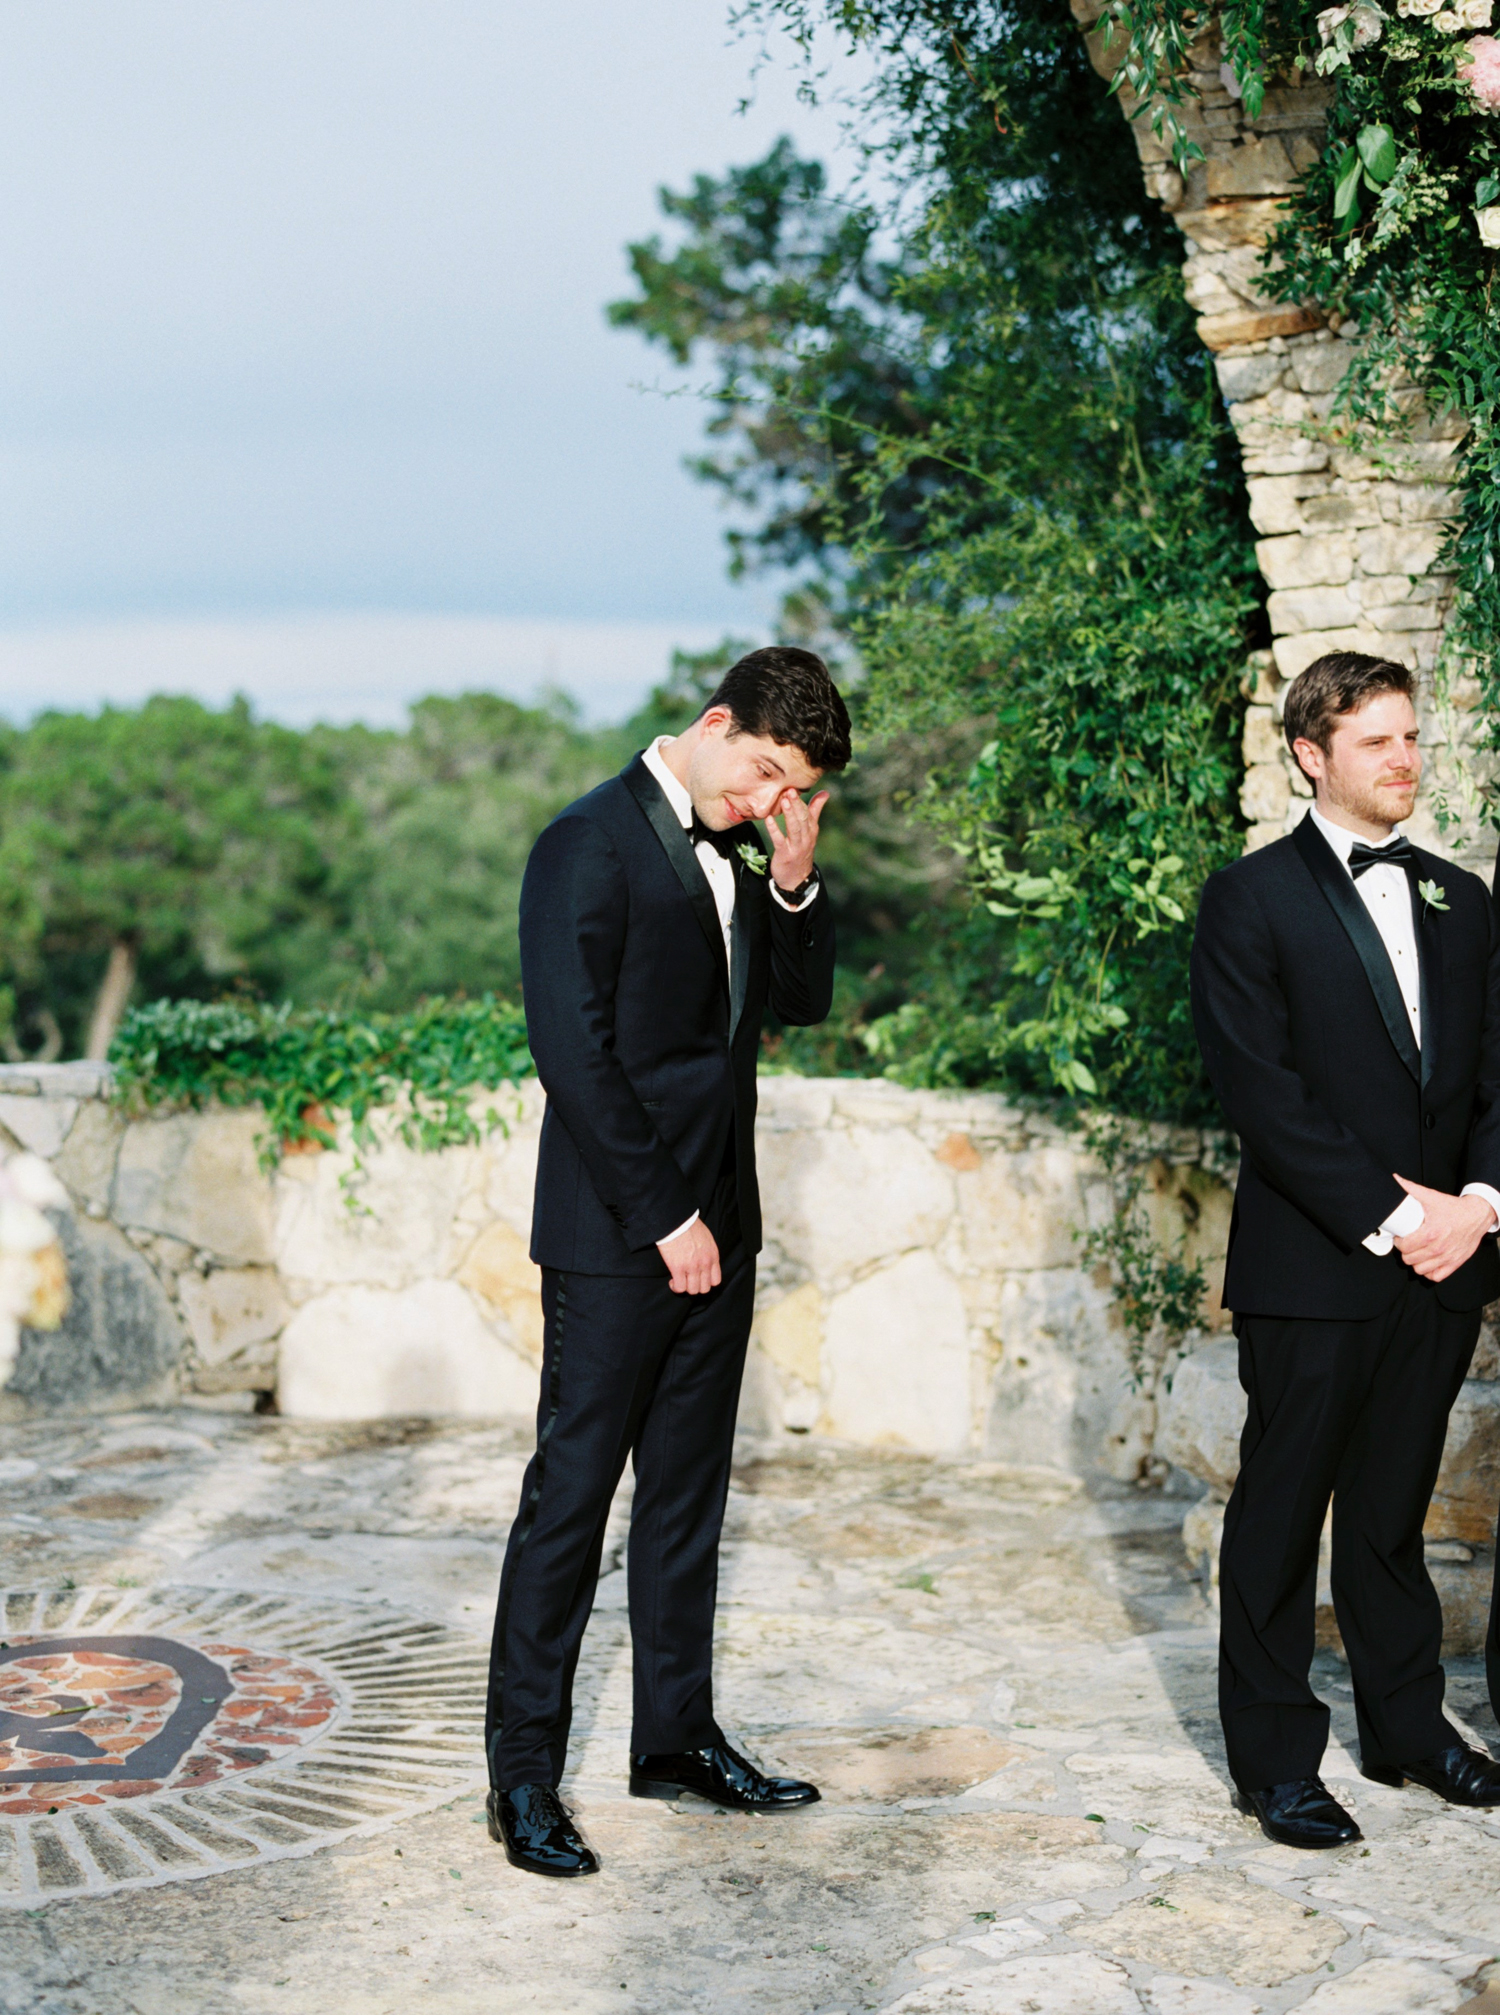 AUSTIN WEDDING PHOTOGRAPHER-56.jpg